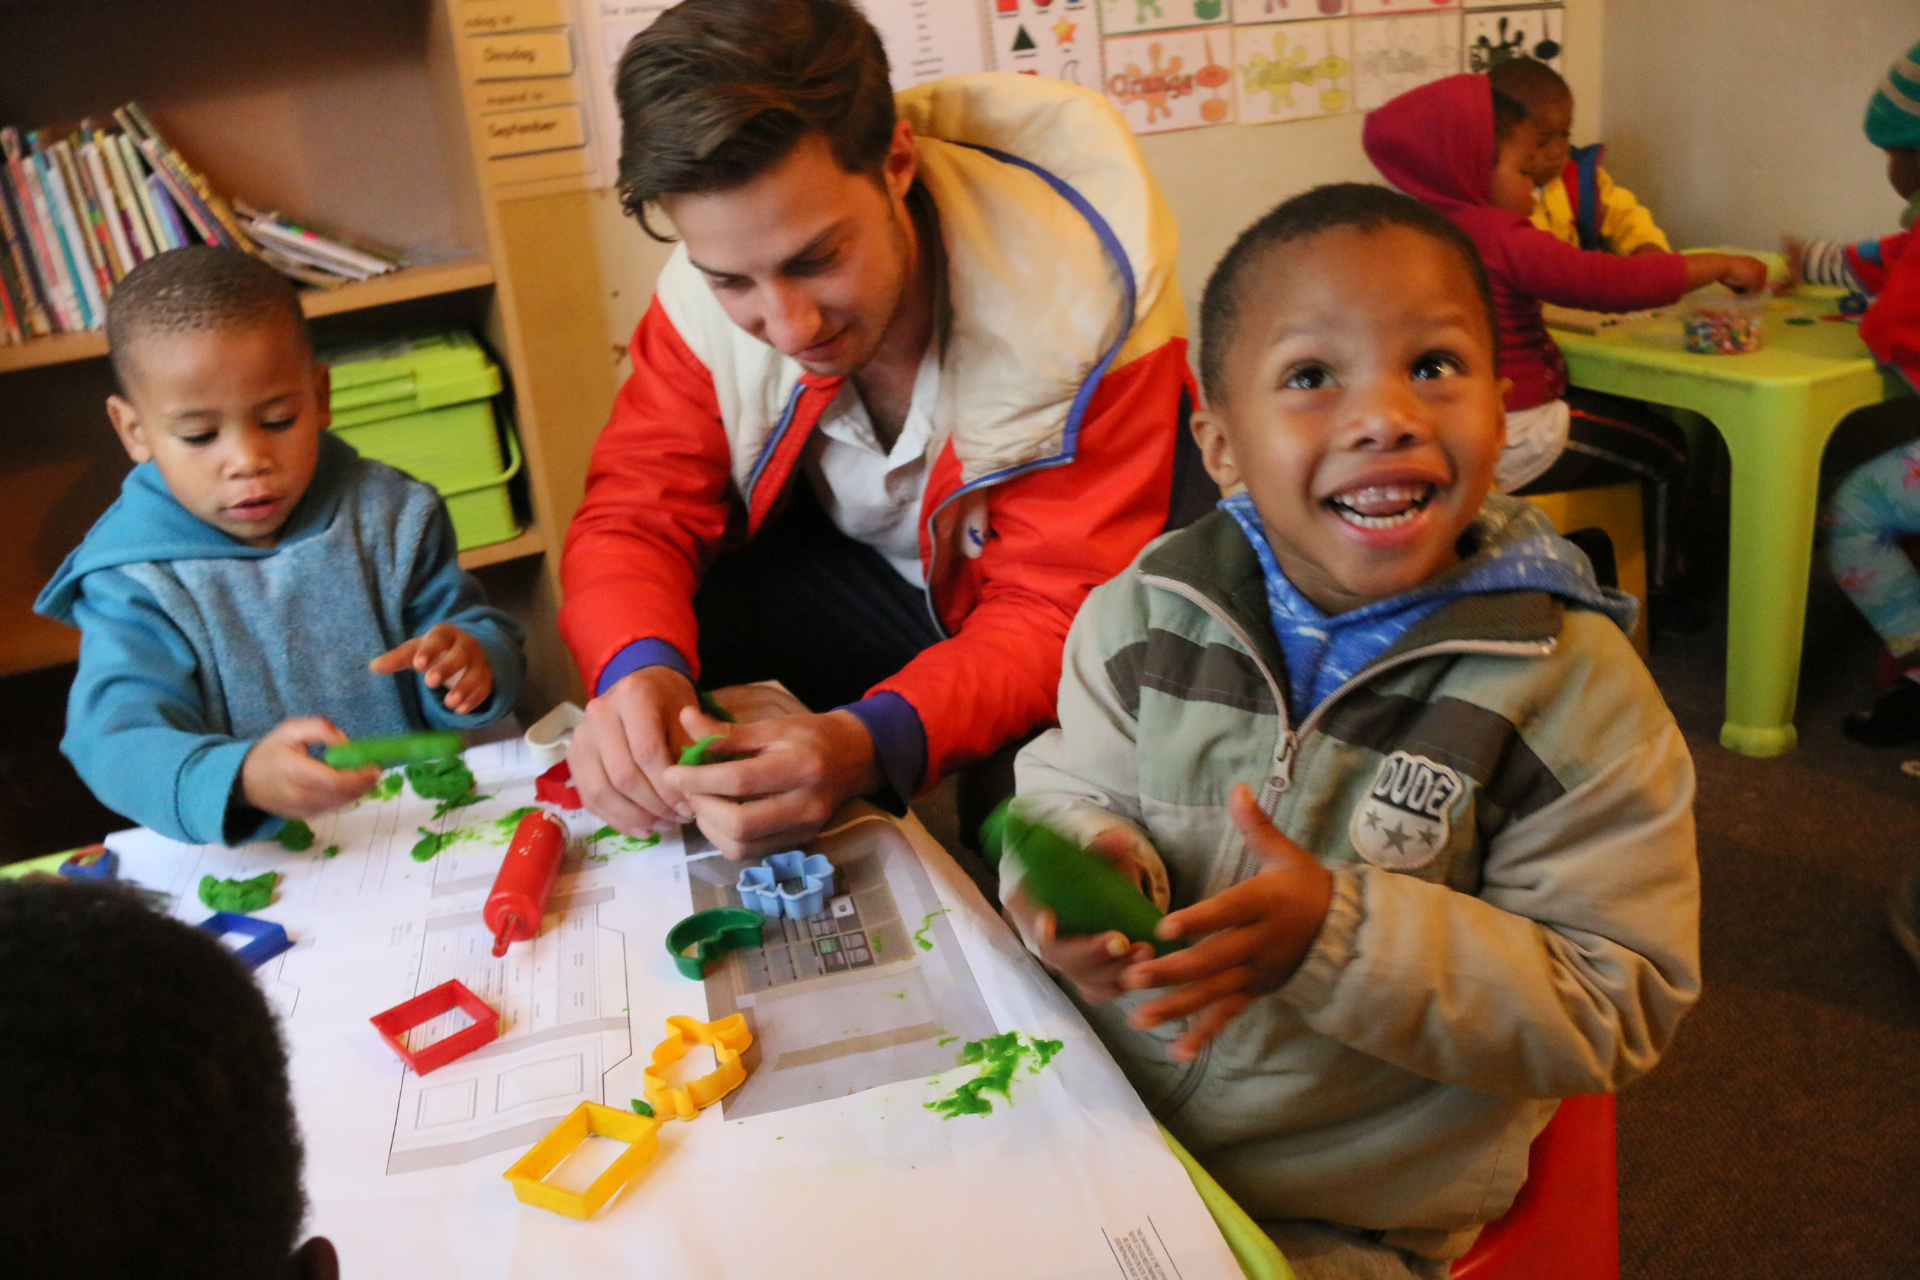 walker playing with kids at Pebbles Project Flenterskloof.JPG